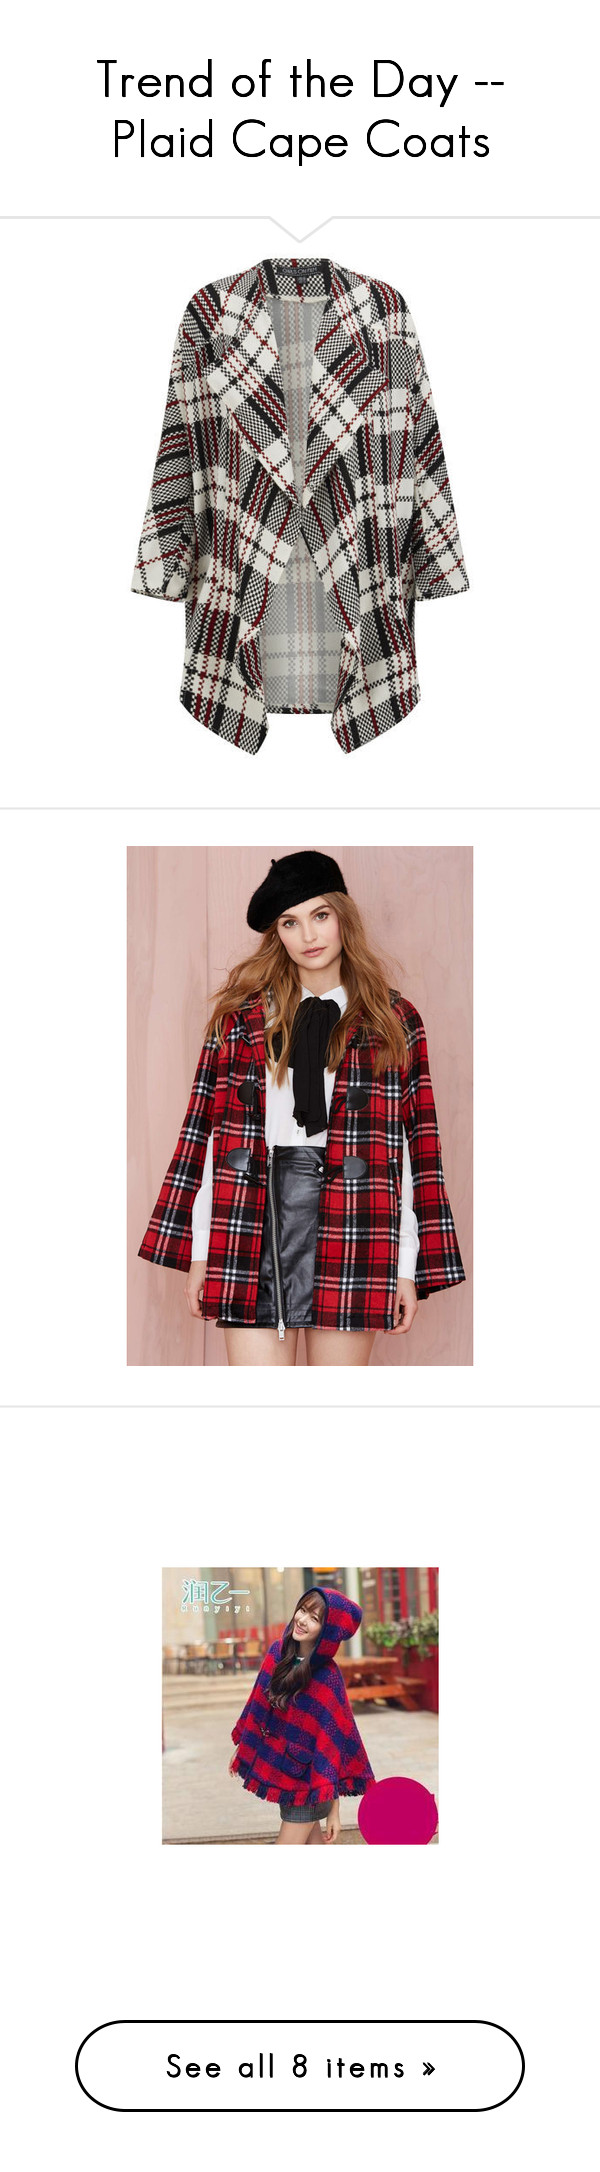 """Trend of the Day -- Plaid Cape Coats"" by blissfulstyle ❤ liked on Polyvore featuring outerwear, multi, cape coat, tartan cape, plaid cape, plaid cape coat, red cape coat, jackets, relad and black and red cape"